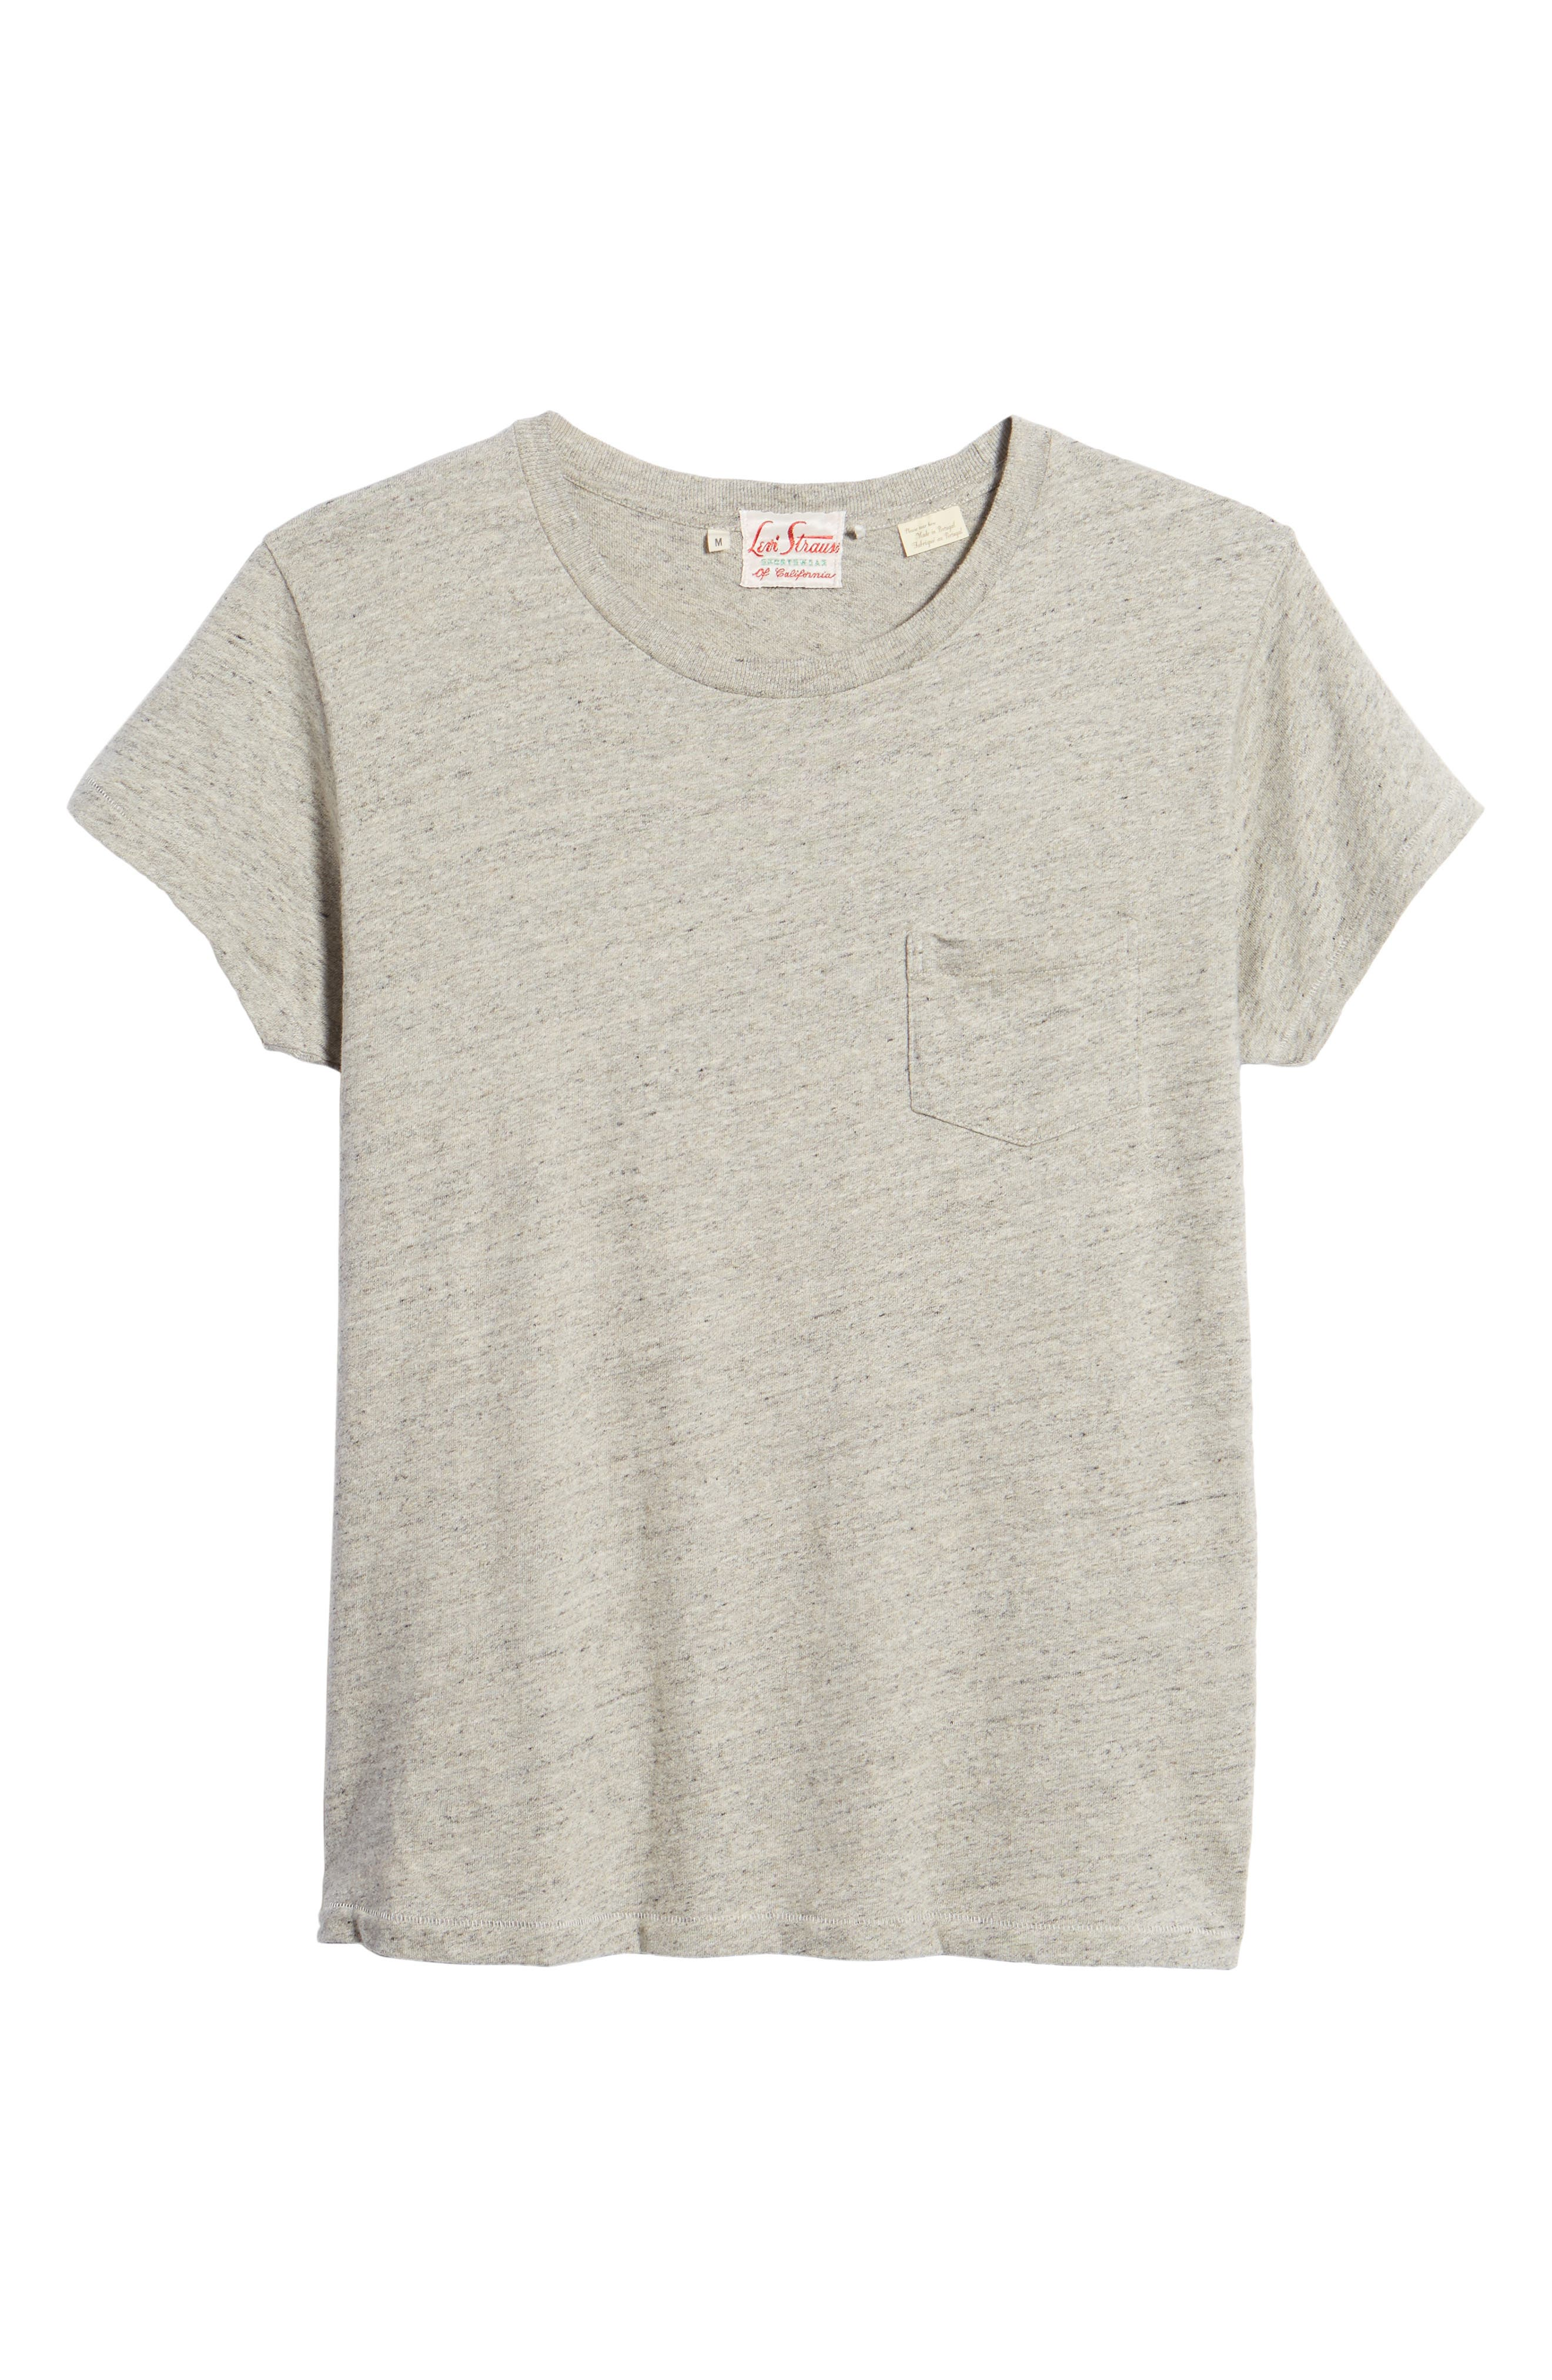 LEVI'S<SUP>®</SUP> VINTAGE CLOTHING,                             Levi's Vintage Clothing 1950s Sportswear Pocket T-Shirt,                             Alternate thumbnail 6, color,                             020